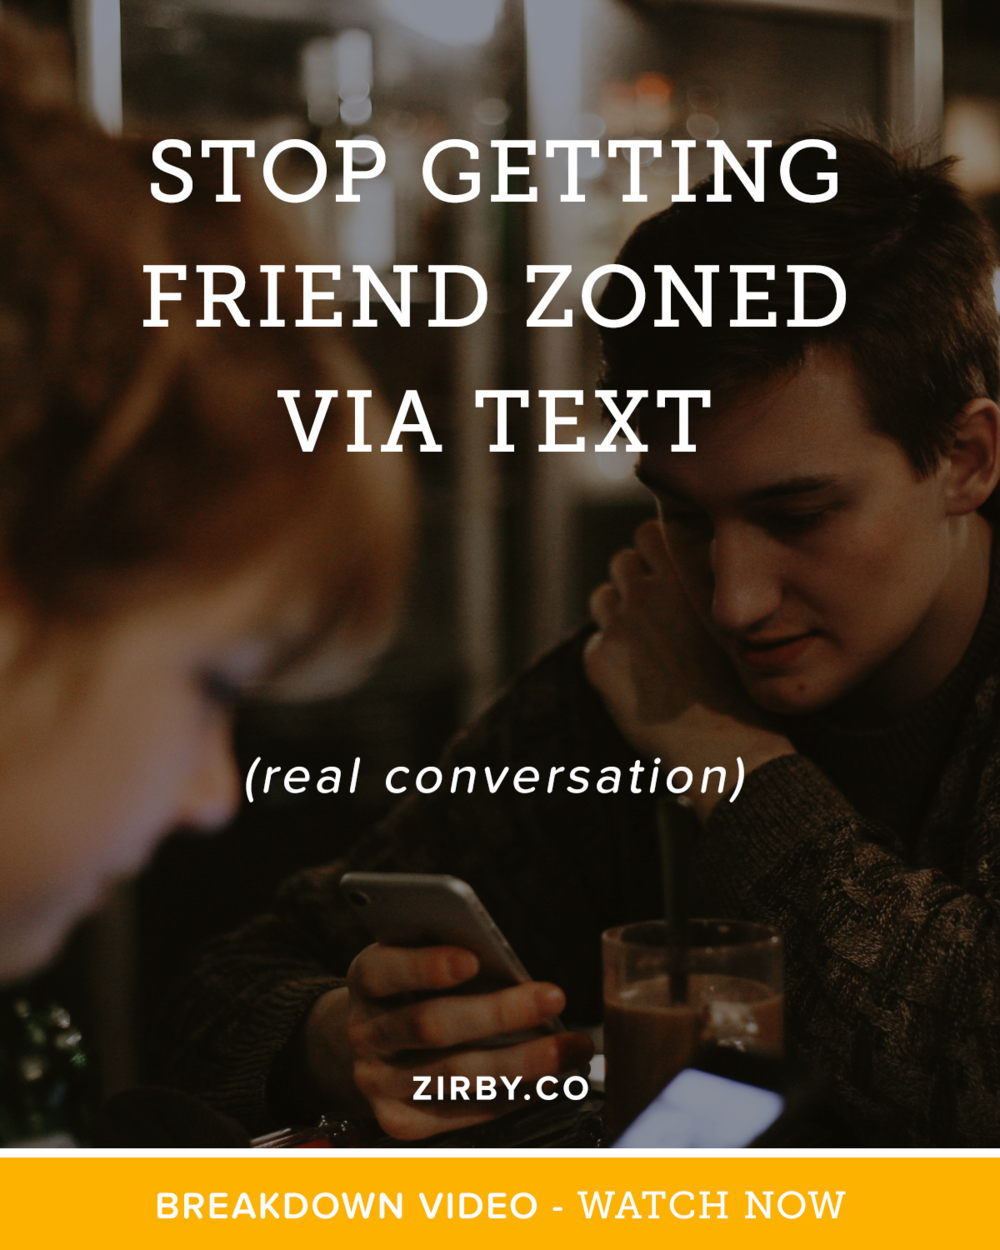 How often has this happened to you? You meet a cute girl, get her phone number, then try to arrange your first date with her. Then... the unthinkable happens: you get friend zoned. What went wrong? Let's figure it out with this actual text conversation.